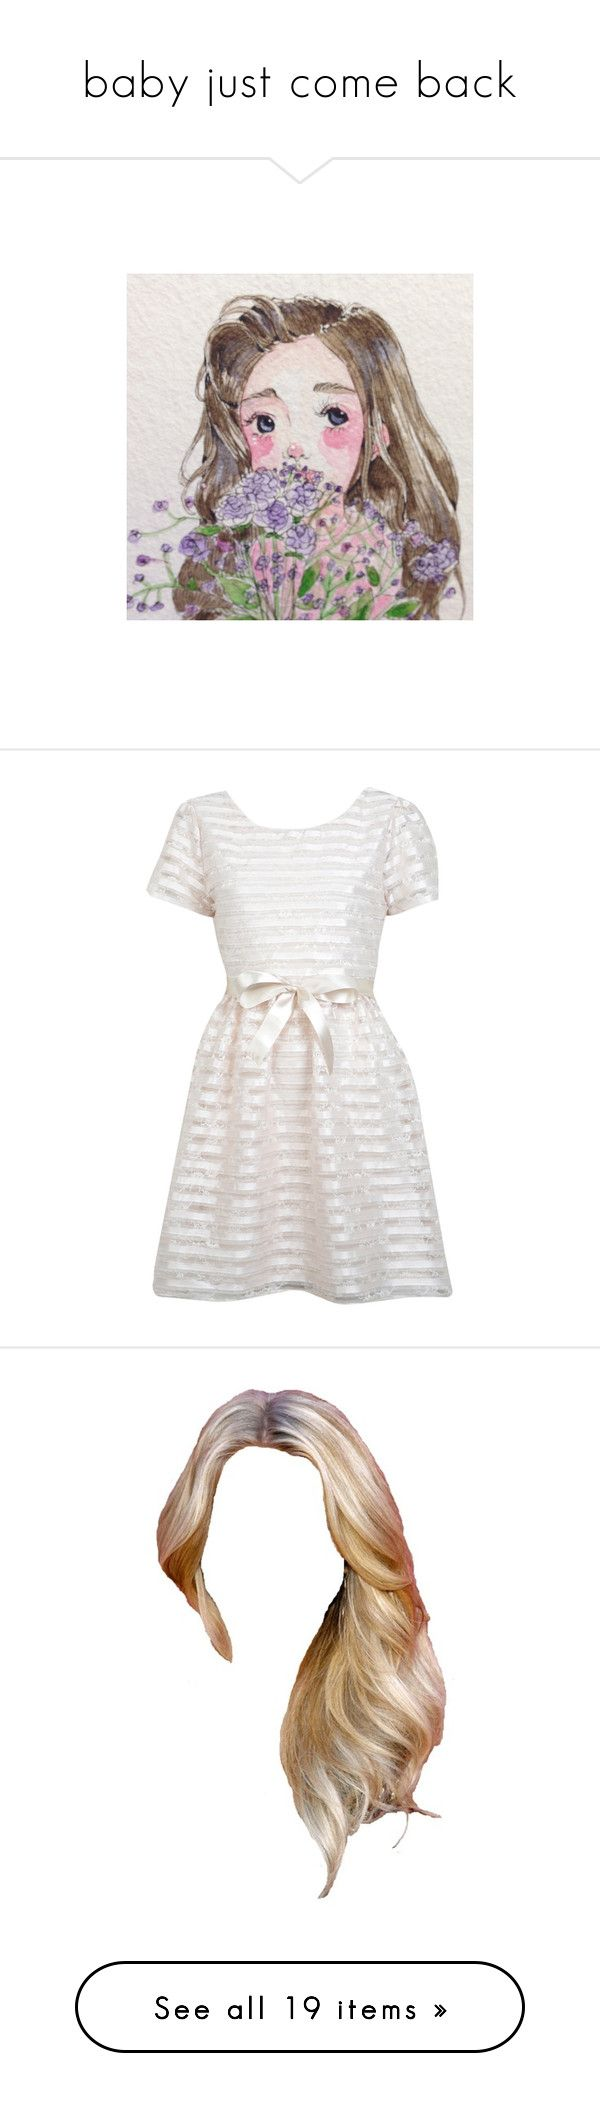 baby just come back by rachel-rentz on Polyvore featuring polyvore, backgrounds, girls, images, pastel pictures, pictures, women's fashion, clothing, dresses, miss selfridge, cream, ribbon dress, miss selfridge dress, striped dress, striped prom dress, hair, doll parts, dolls, wigs, doll hair, beauty products, fillers, accessories, beauty, fillers - pink, pink, outerwear, coats, jackets, coats & jackets, beige coat, mango coat, books, magazine, tops, t-shirts, shirts, crop tops, blusas…